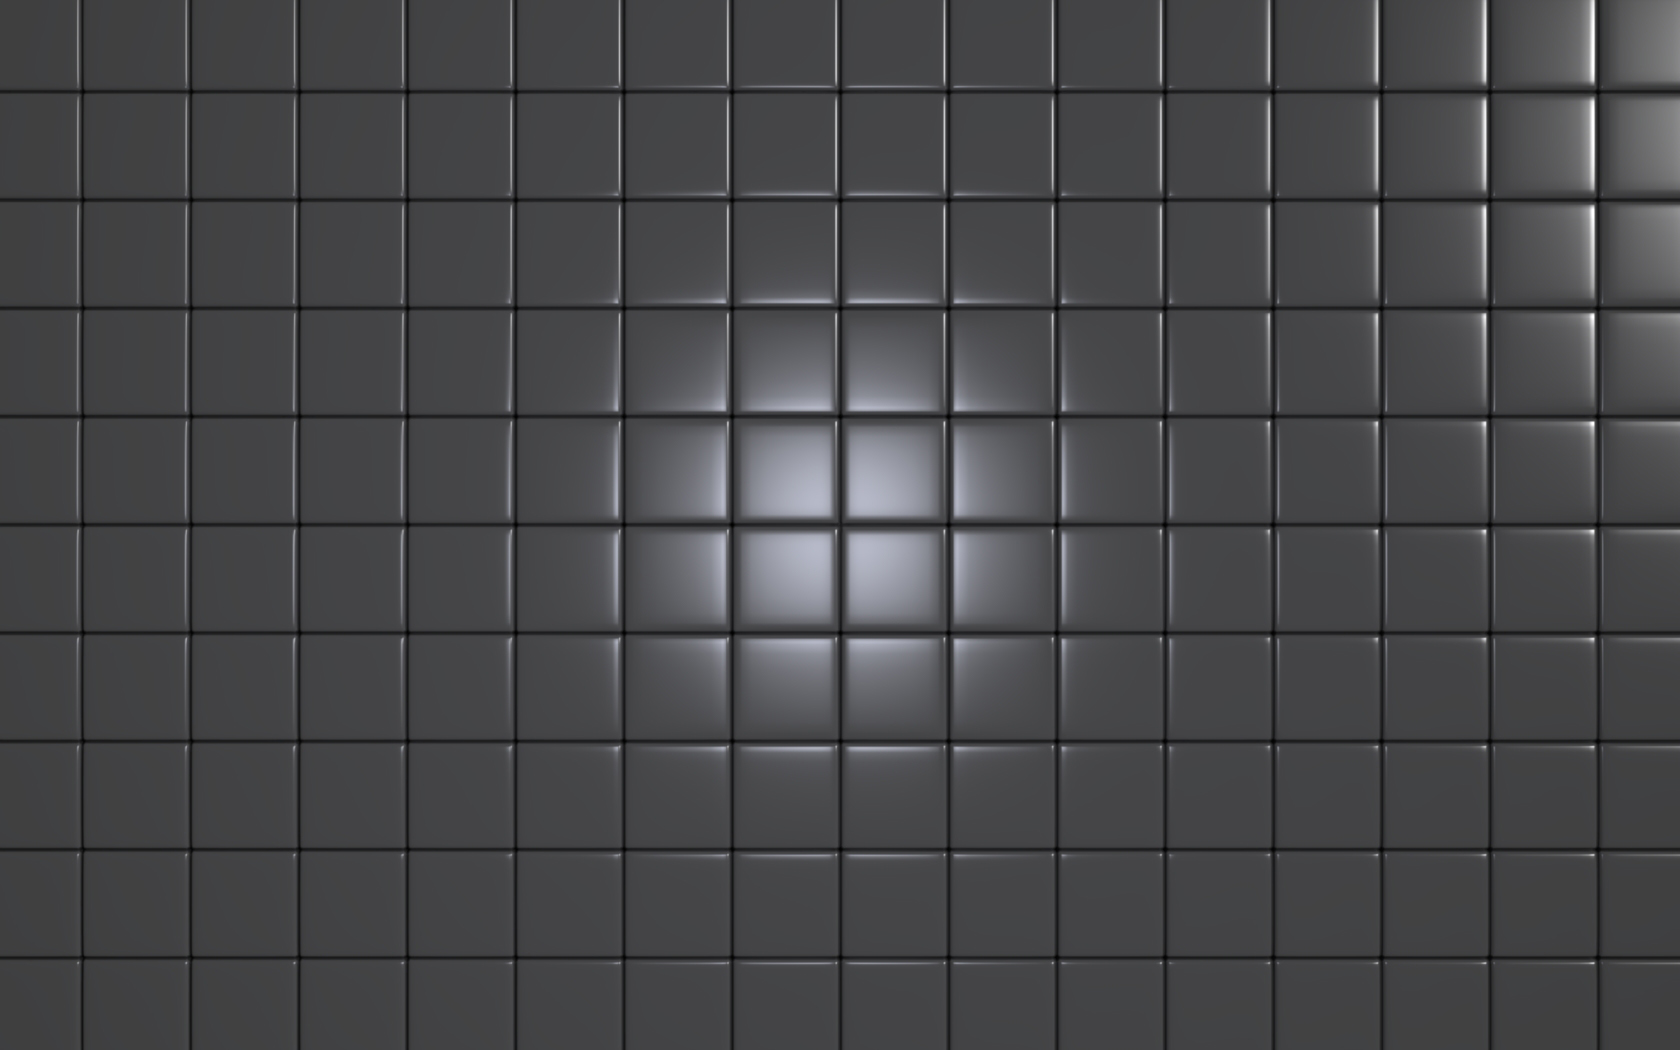 Tile wallpaper by corpseart on deviantart for Black 3d tiles wallpaper